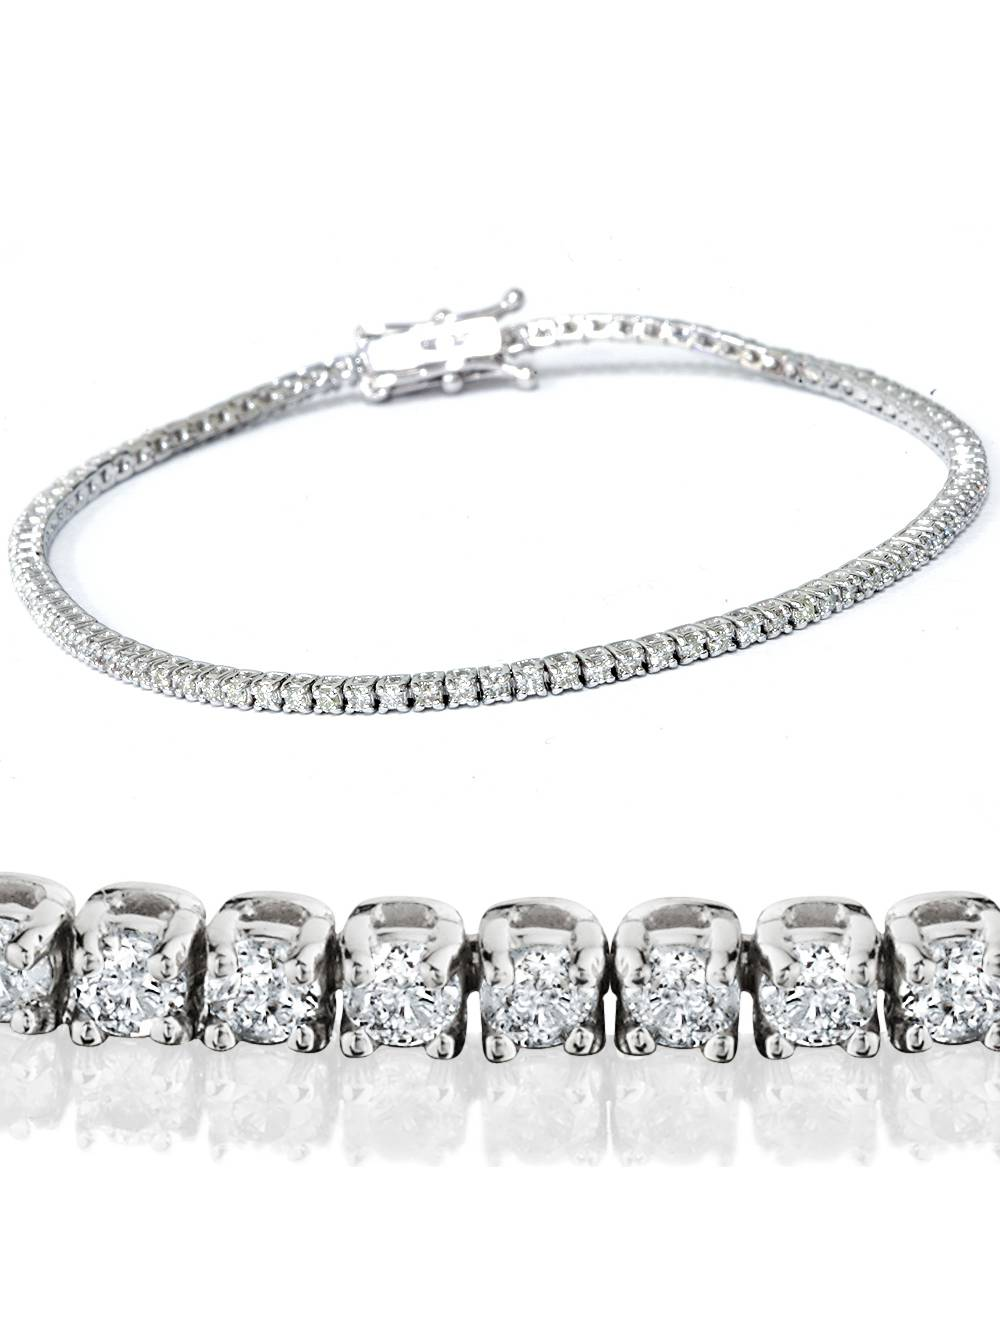 Beautiful Tennis Bracelet I1 H 2.50Ct Round Diamond Prong Set 14Kt White Gold